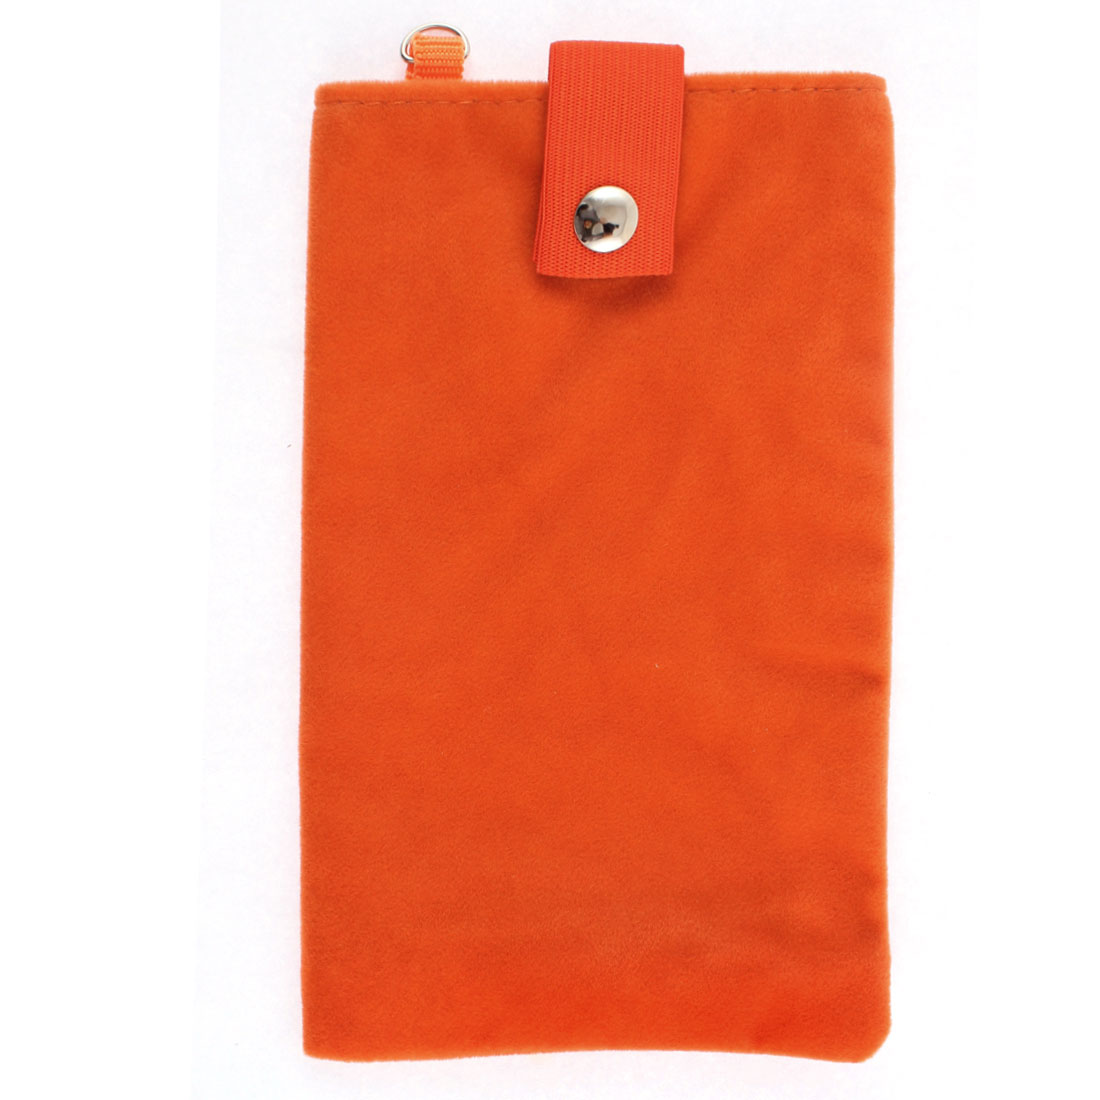 Dual Layer Magnetic Clasp Button Cell Phone Pouch Sleeve Bag Orange 18x11cm